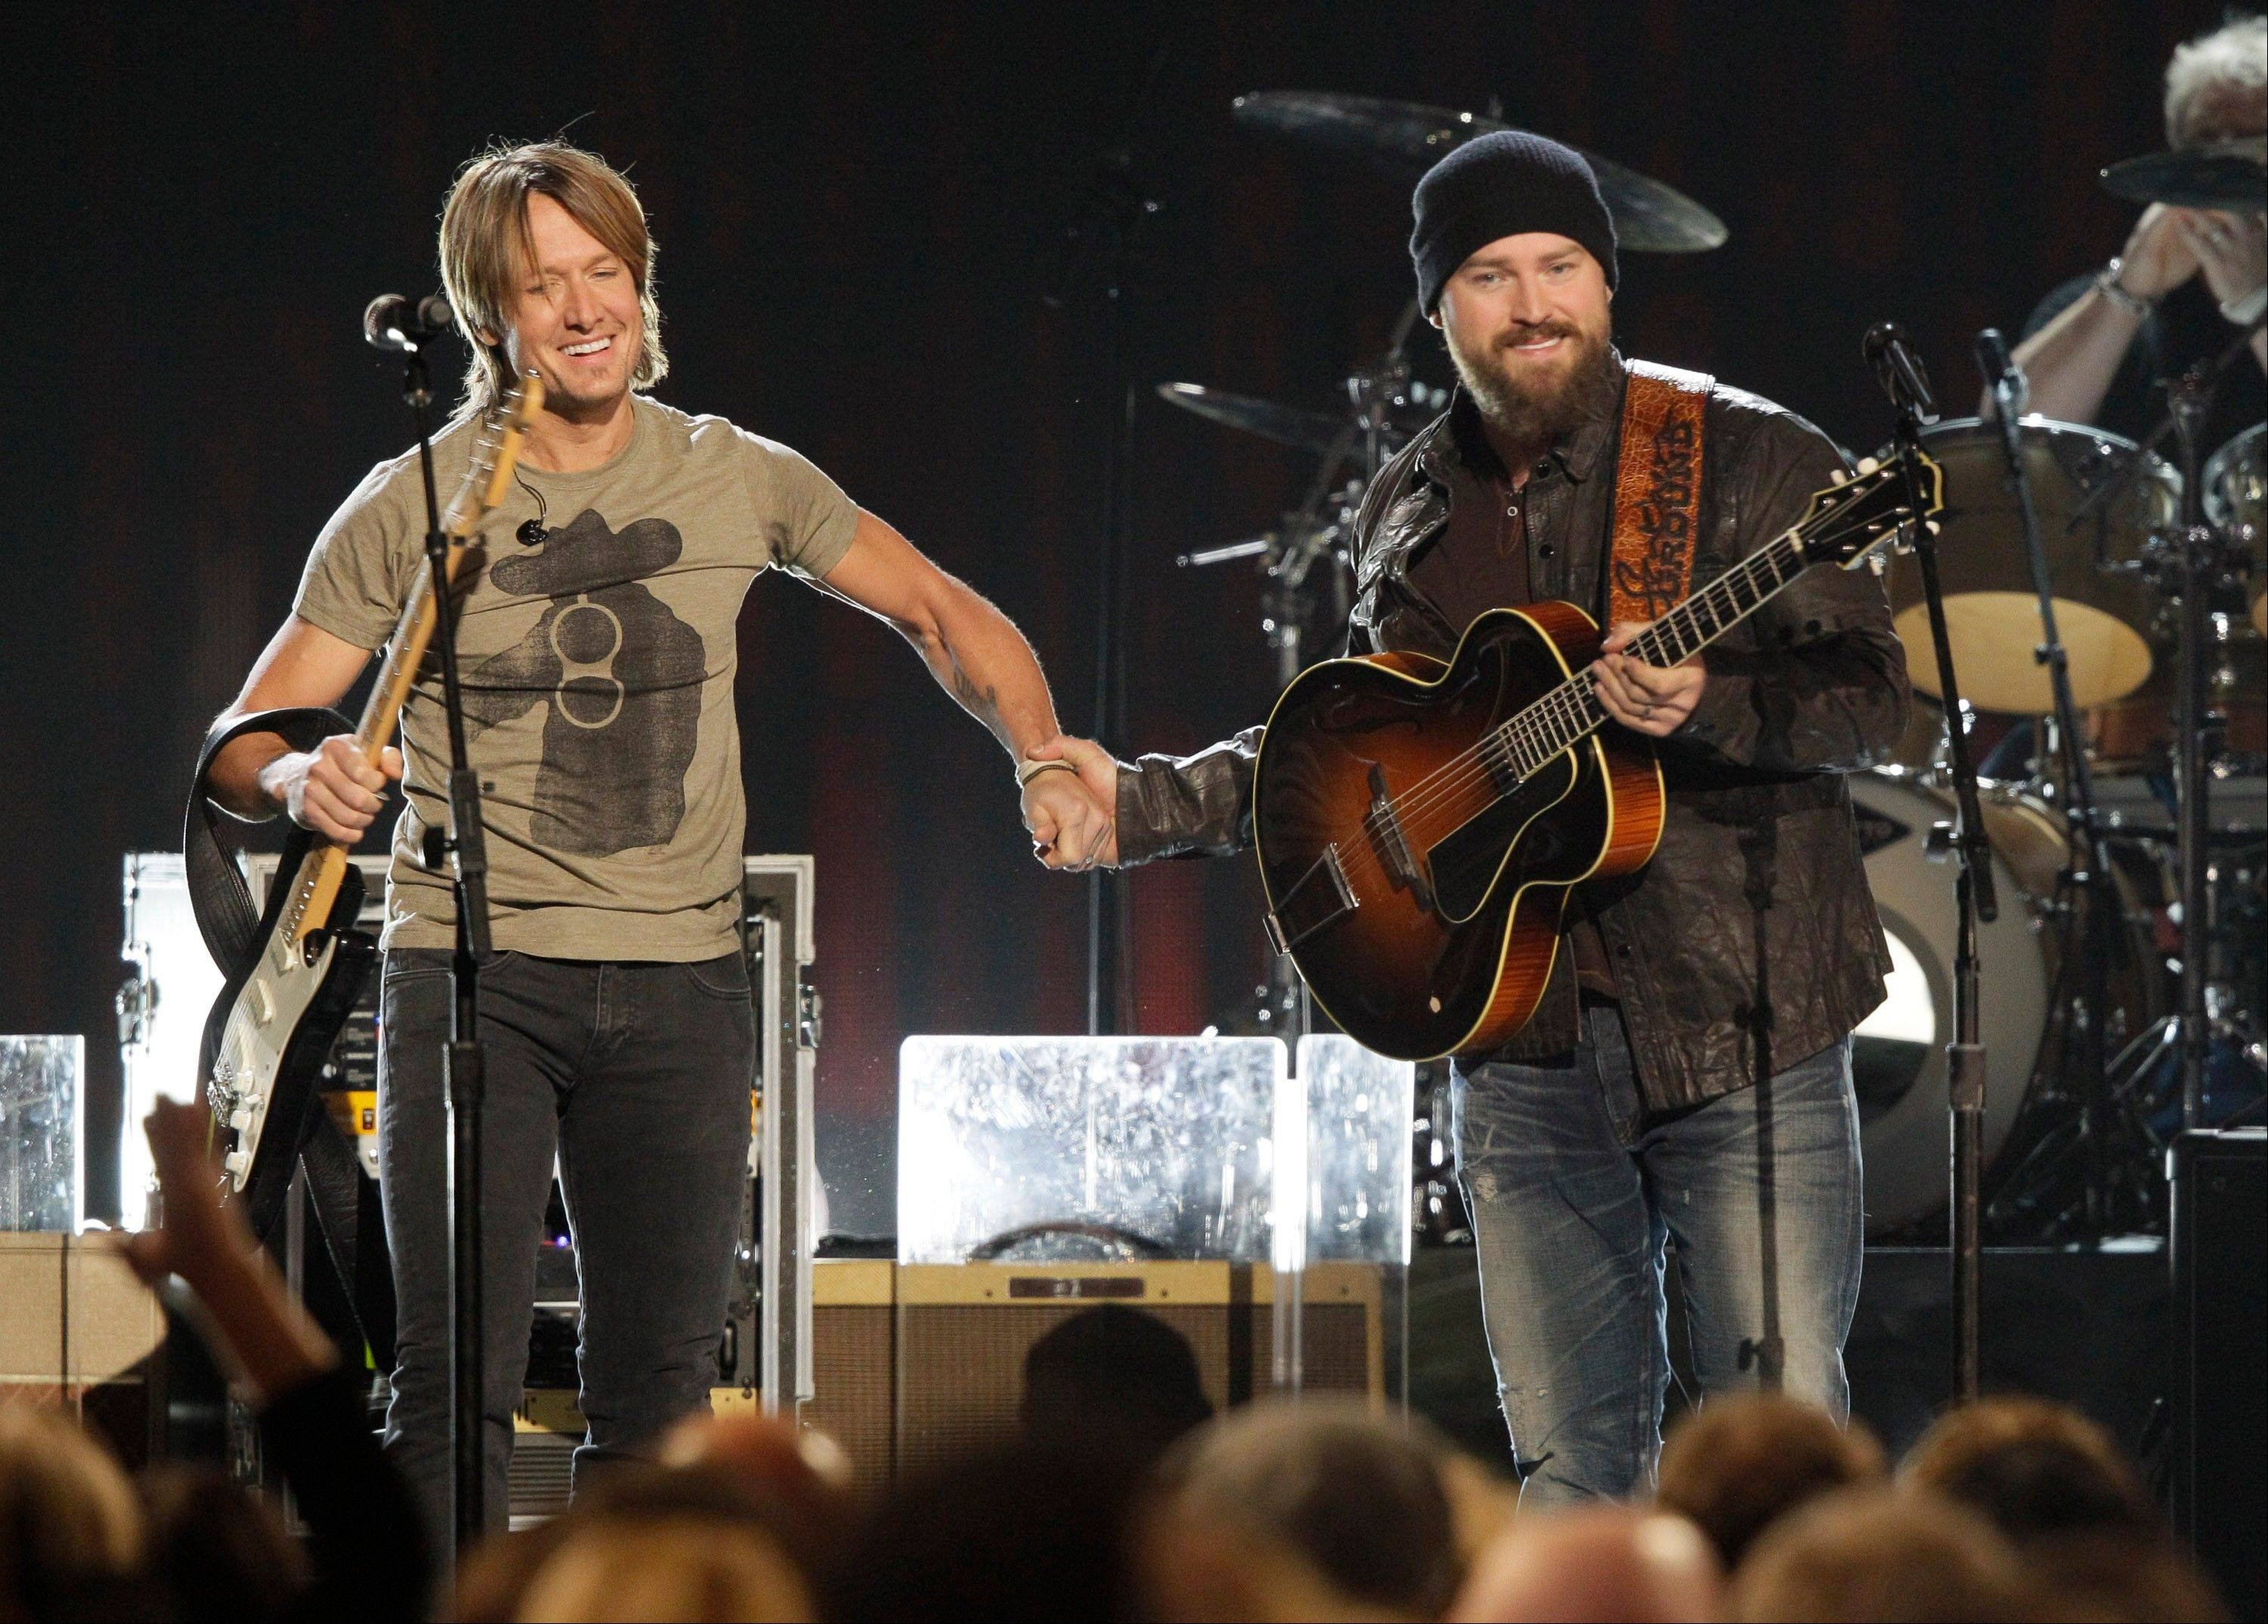 Keith Urban, left, and Zac Brown perform at the 46th Annual Country Music Awards at the Bridgestone Arena on Thursday, Nov. 1, 2012, in Nashville, Tenn.